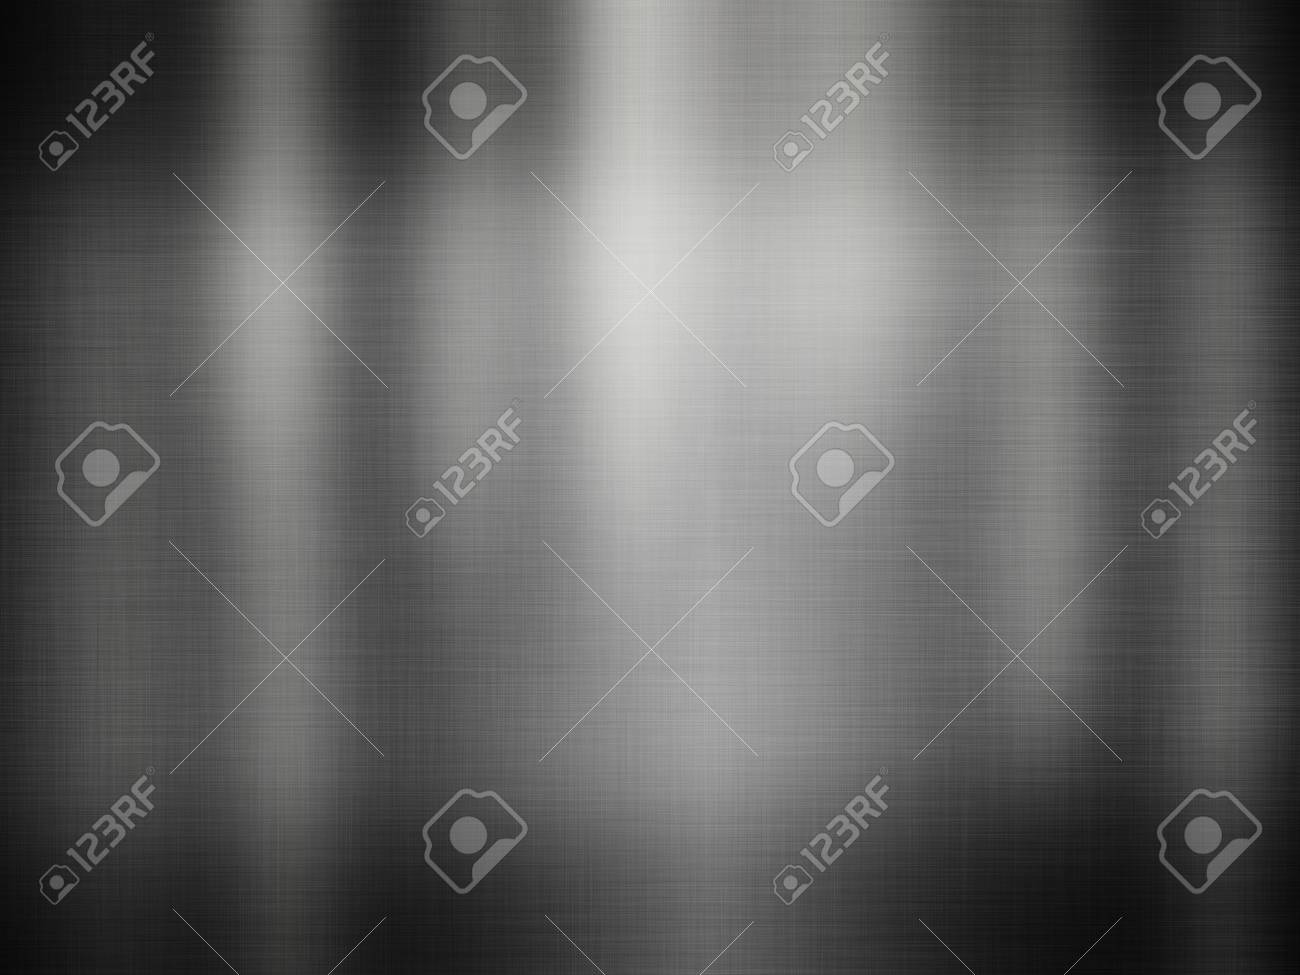 Stainless steel texture or metal texture background Banque d'images - 75076729